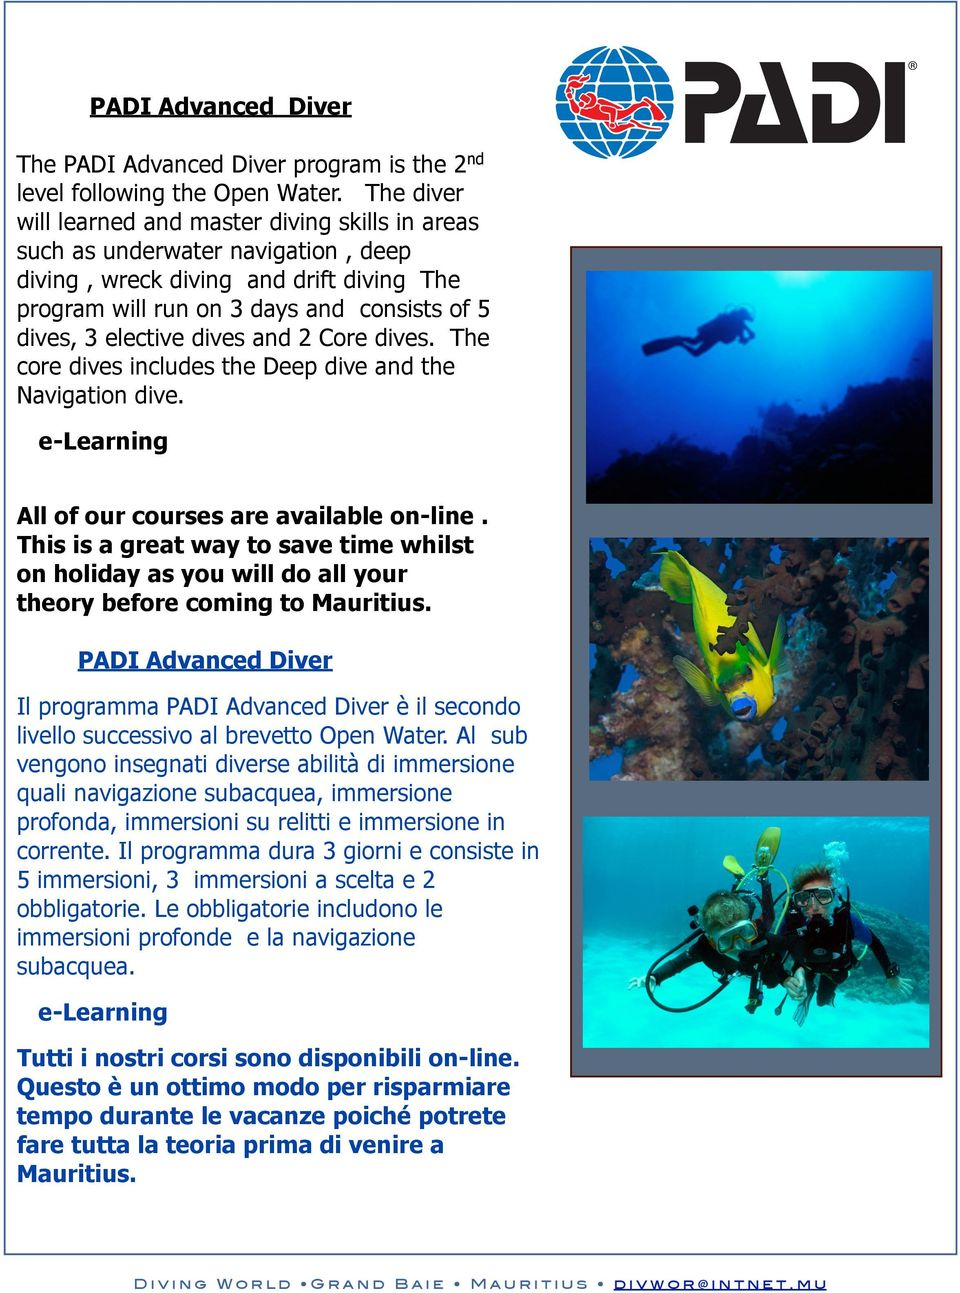 dives and 2 Core dives. The core dives includes the Deep dive and the Navigation dive. e-learning All of our courses are available on-line.